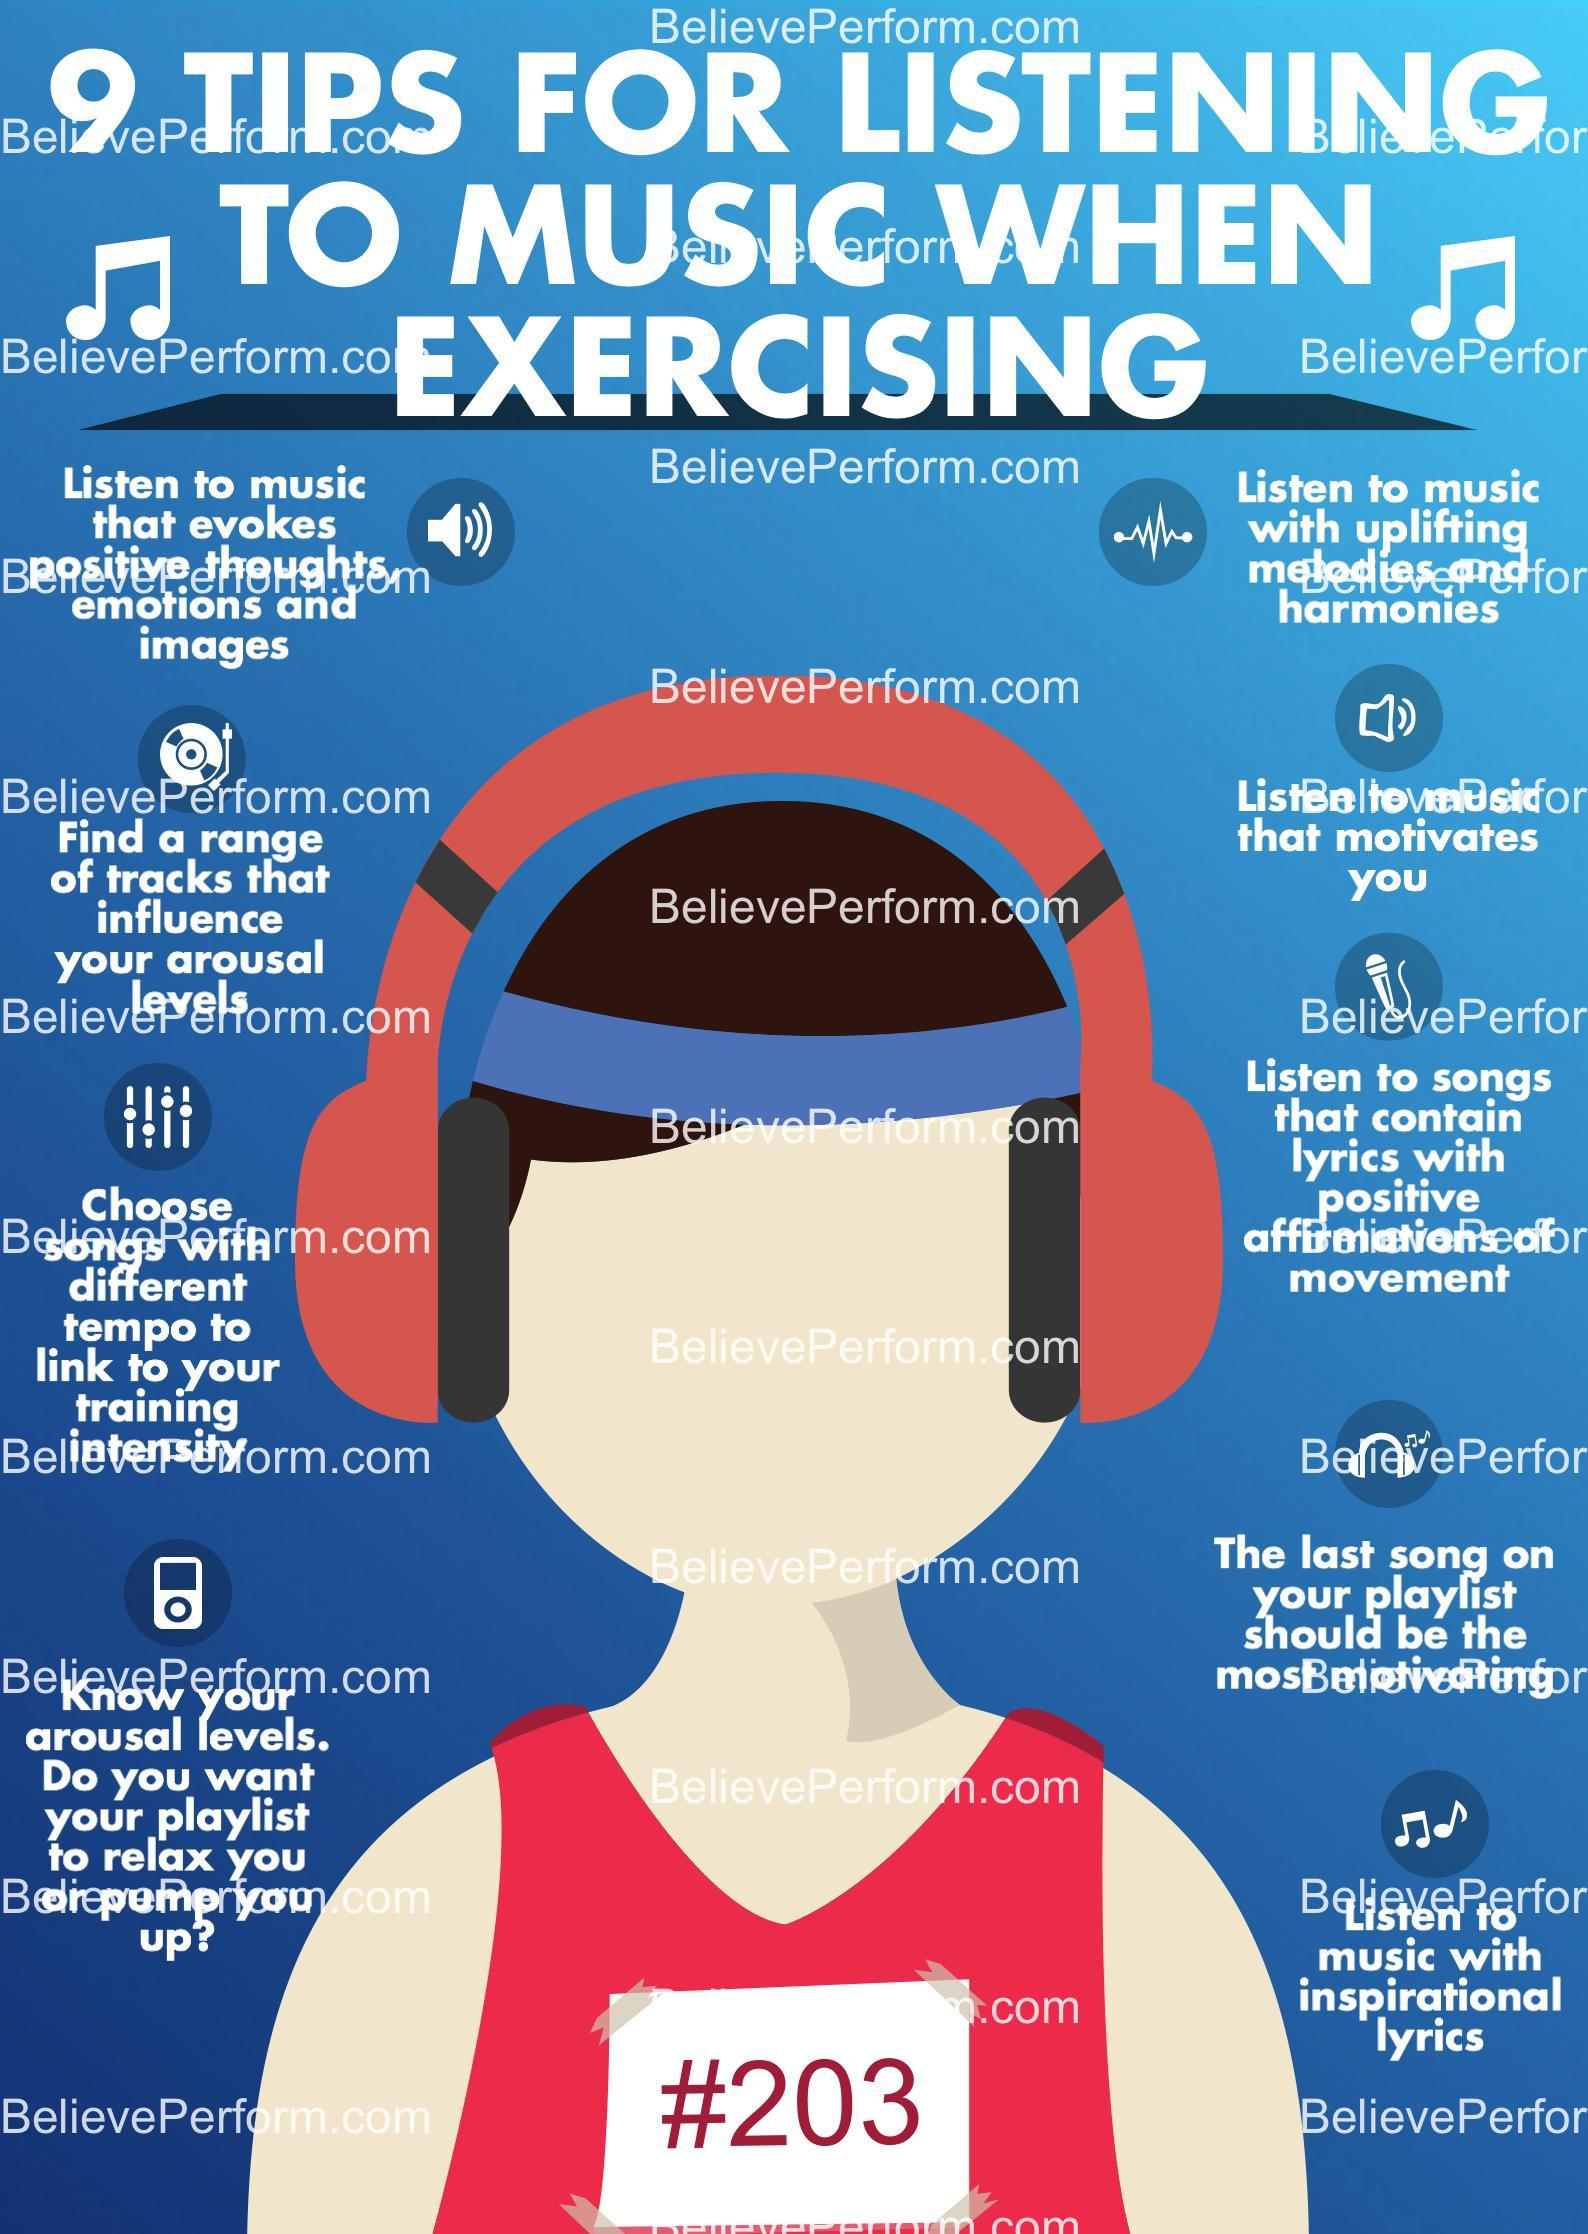 9 tips for listening to music when exercising